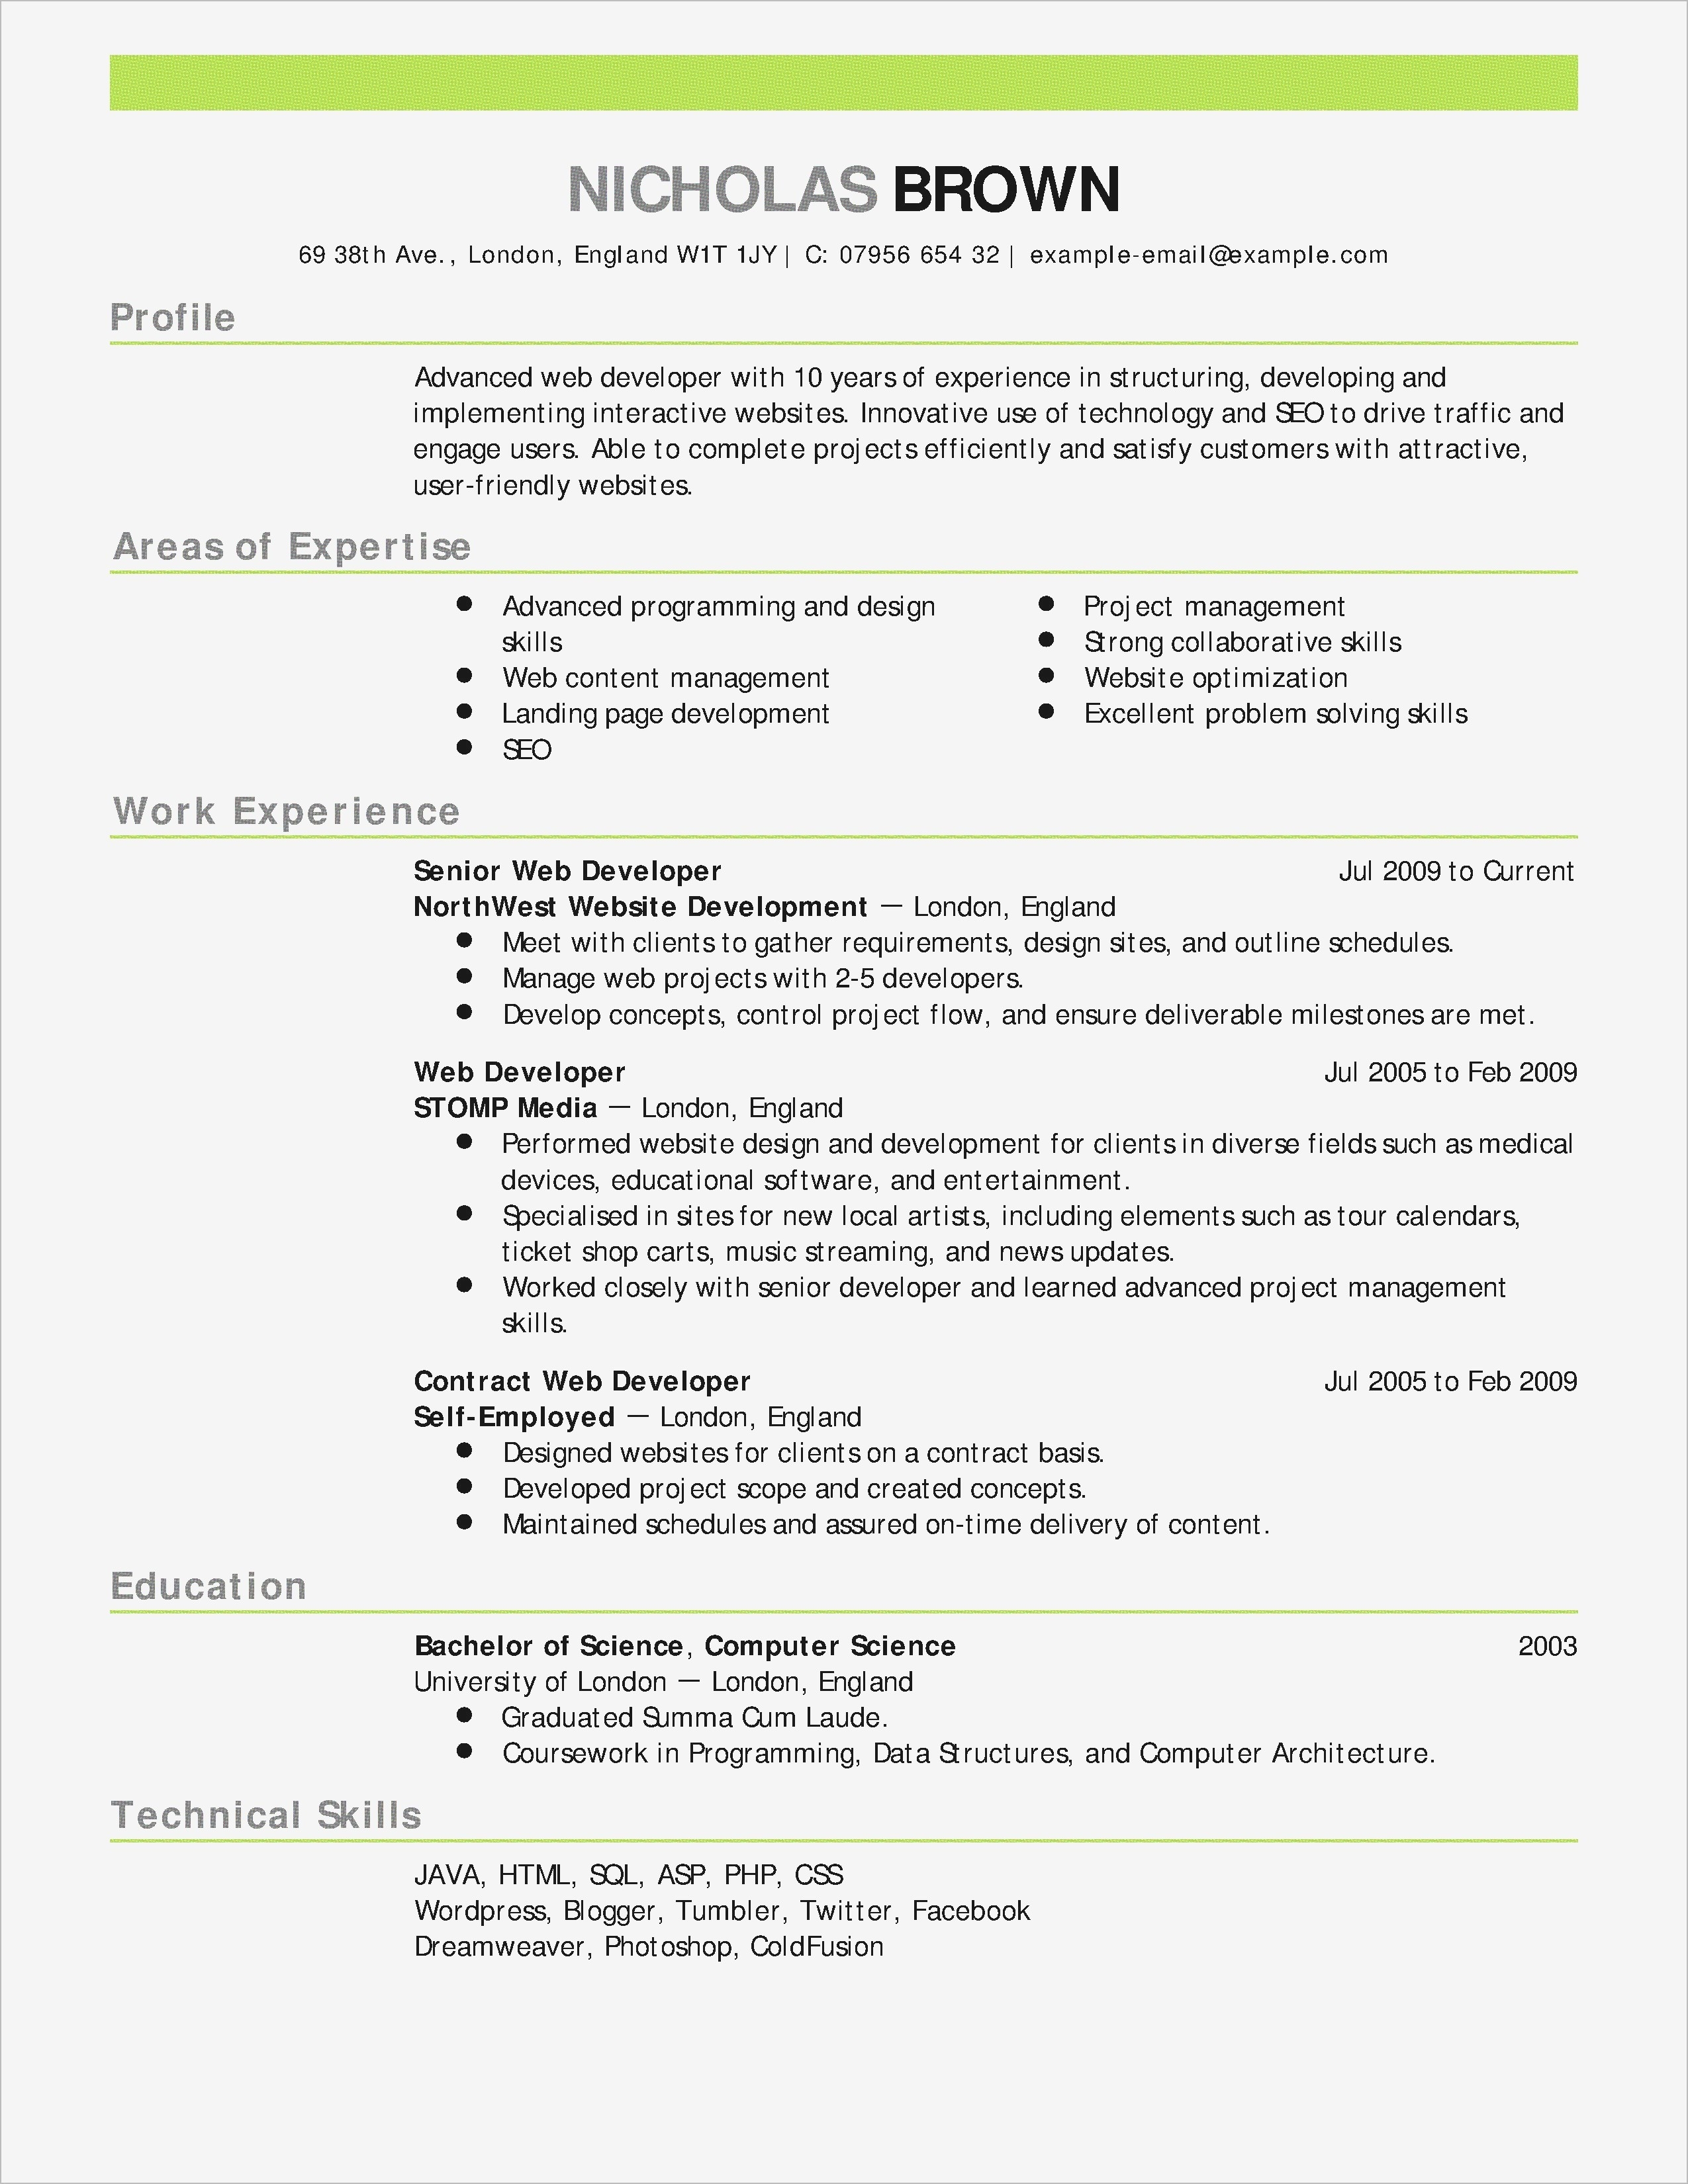 Create A Resume Template - Letter Stencils for Painting Lovely Cfo Resume Template